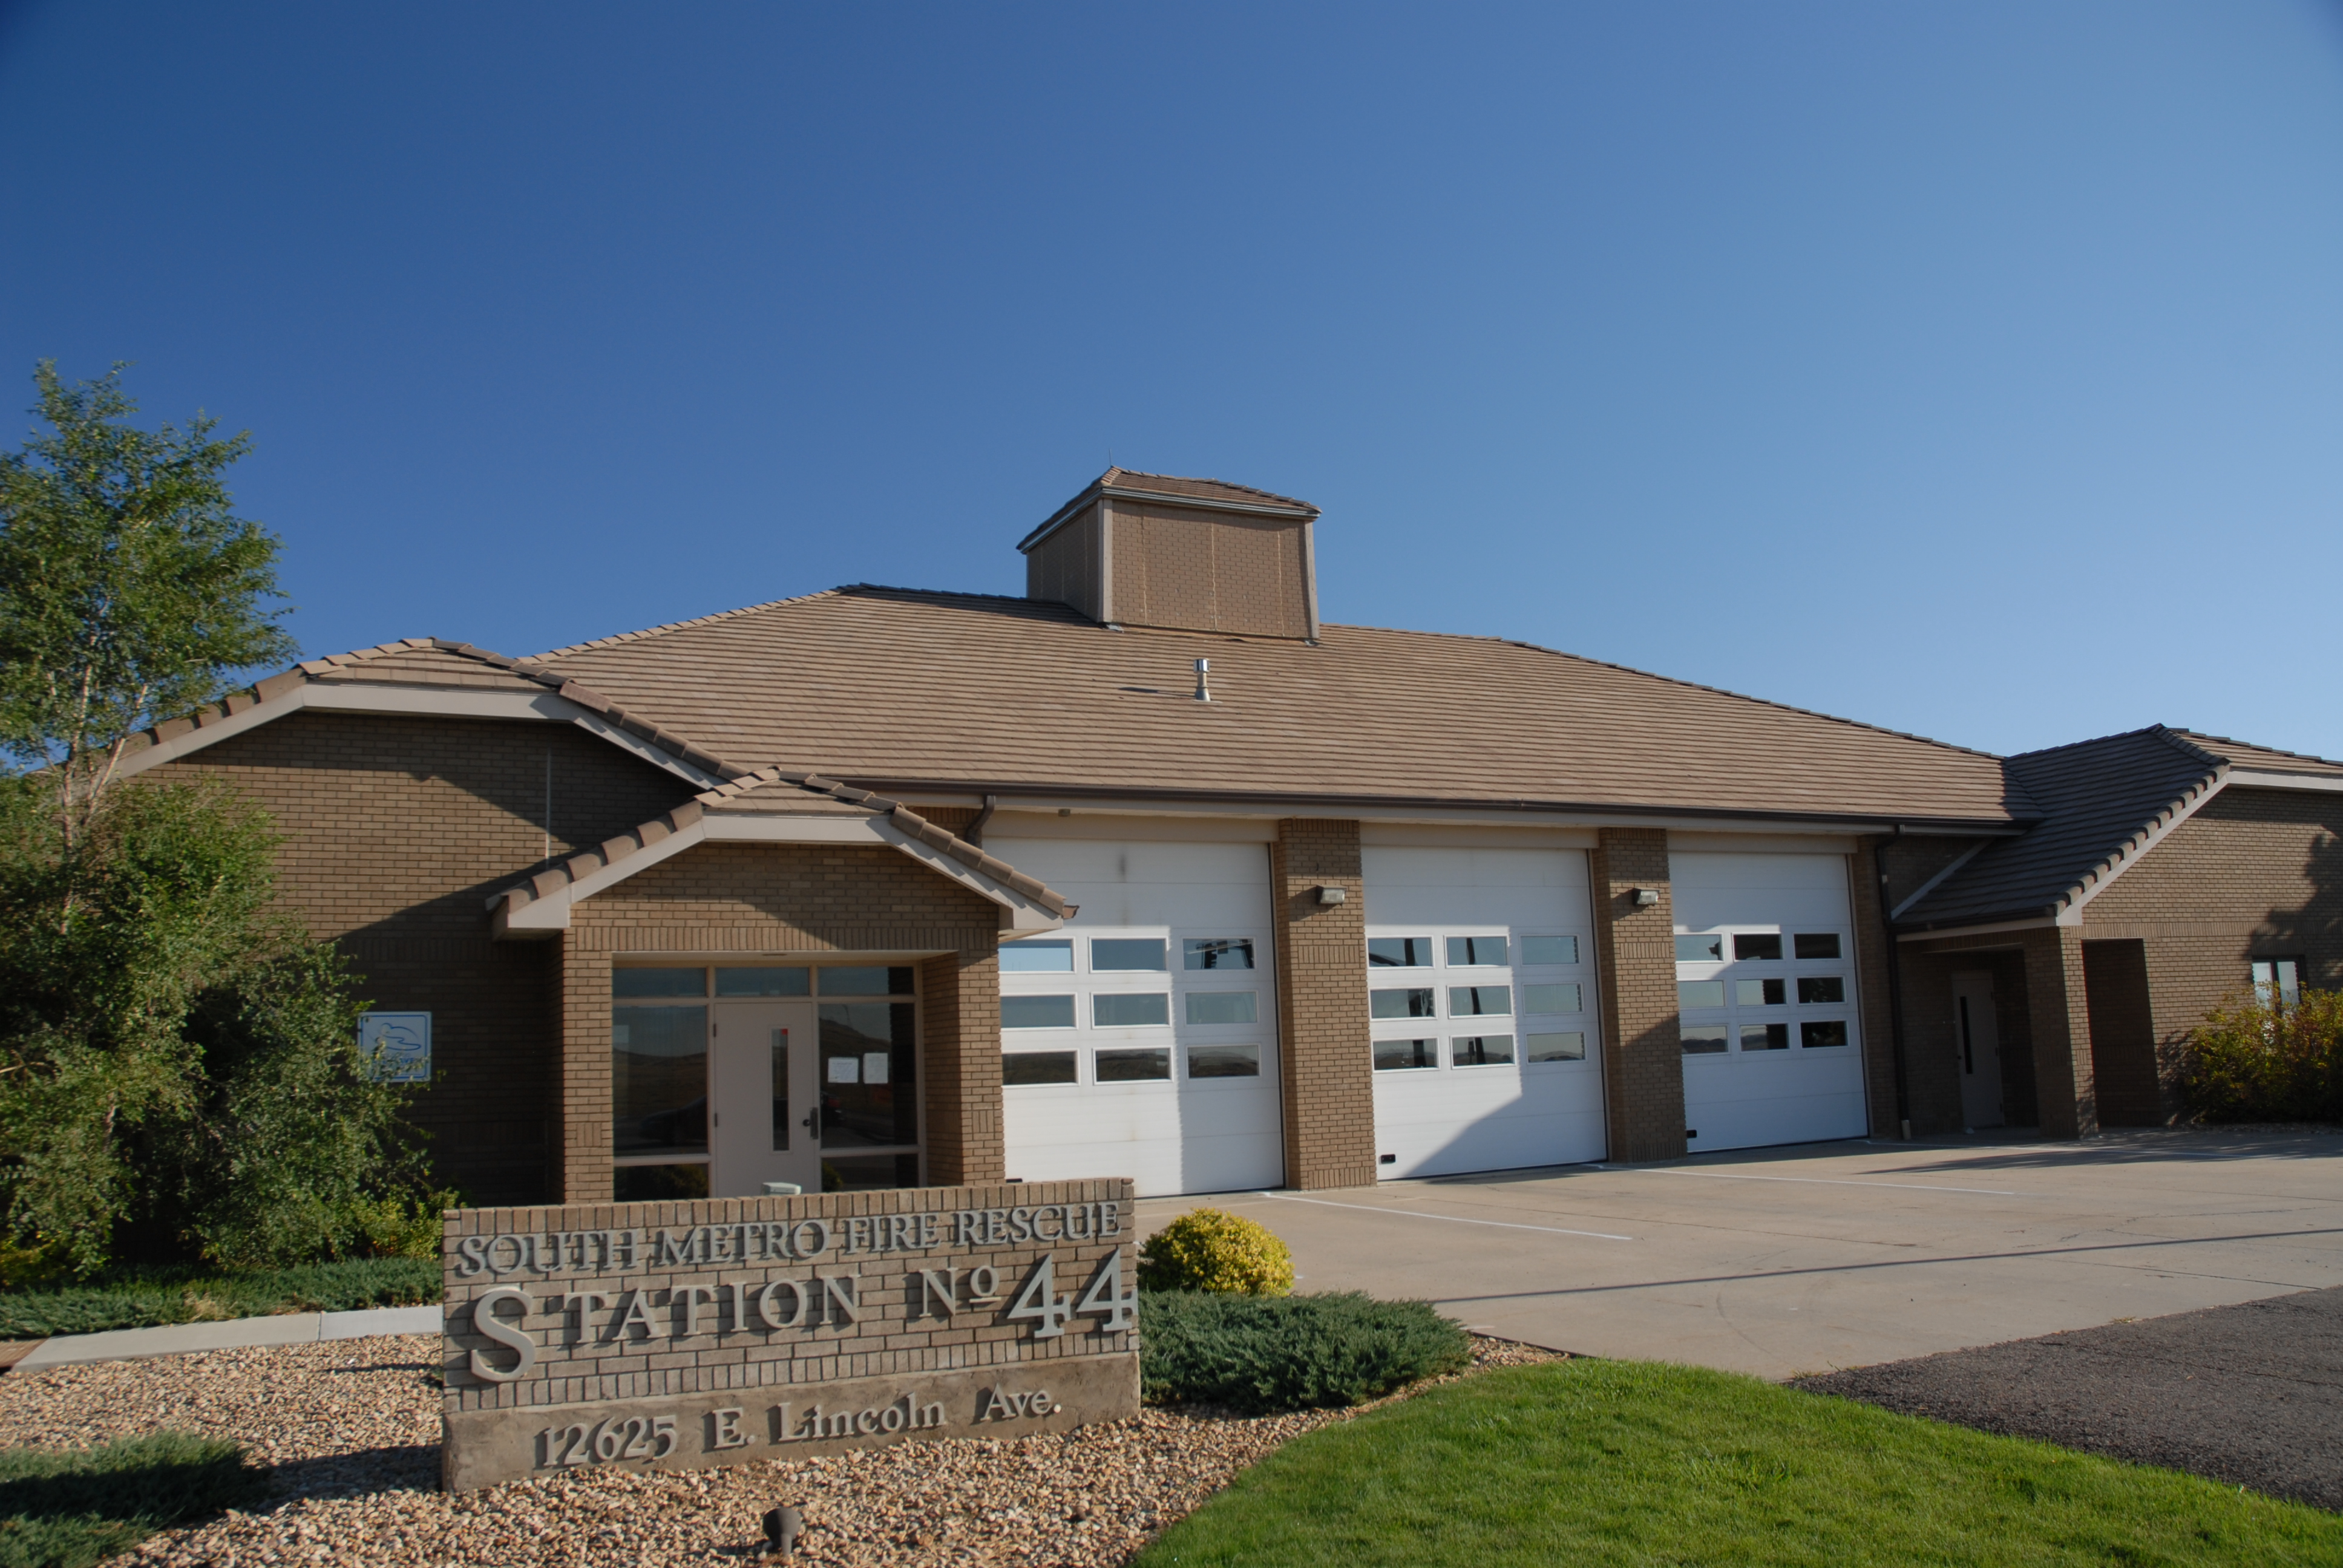 Fire Station 44